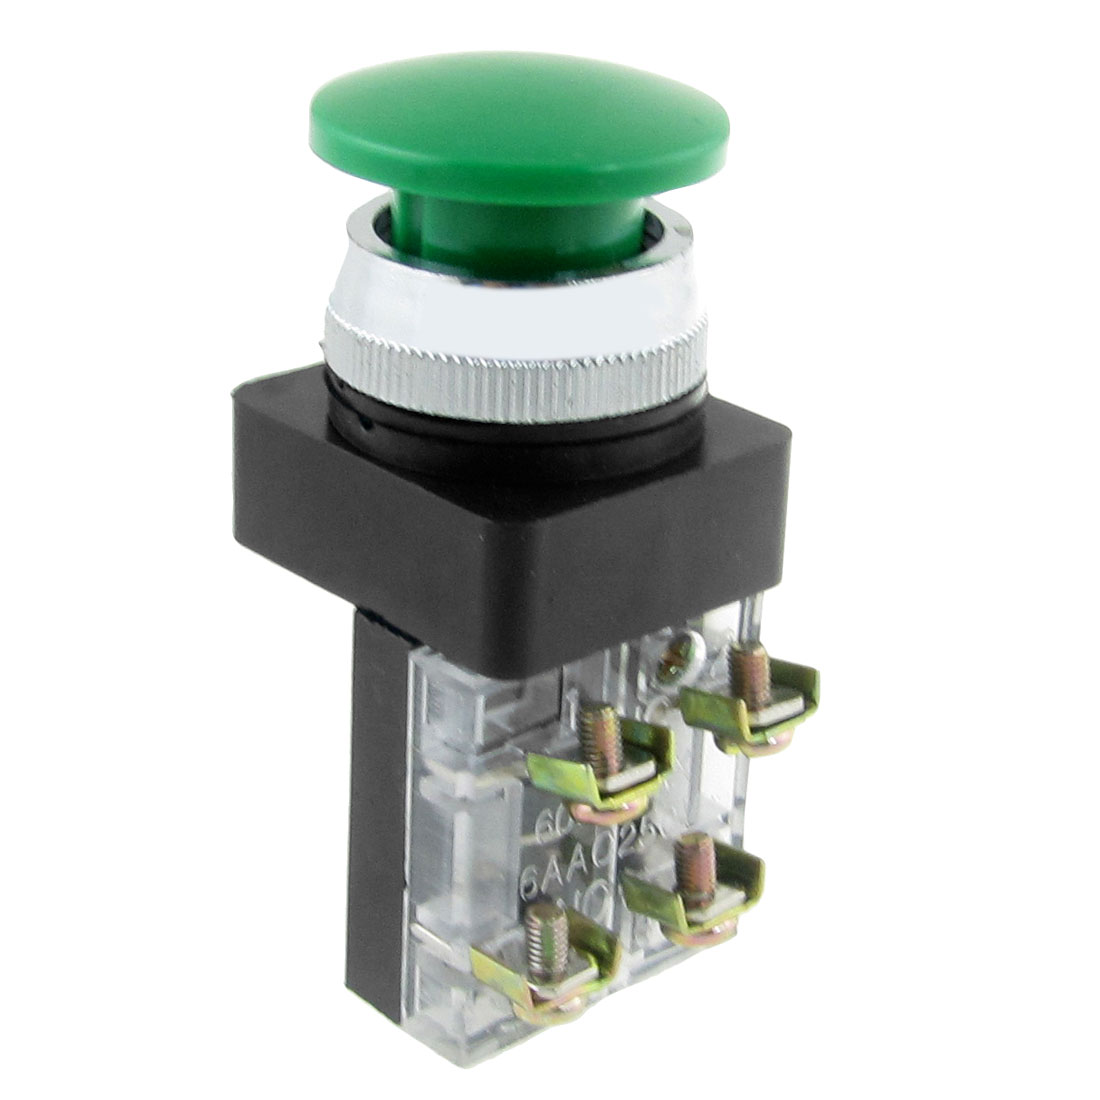 AC 250V 6A Emergency Stop Green Mushroom Momentary Push Button Switch 1NO 1NC